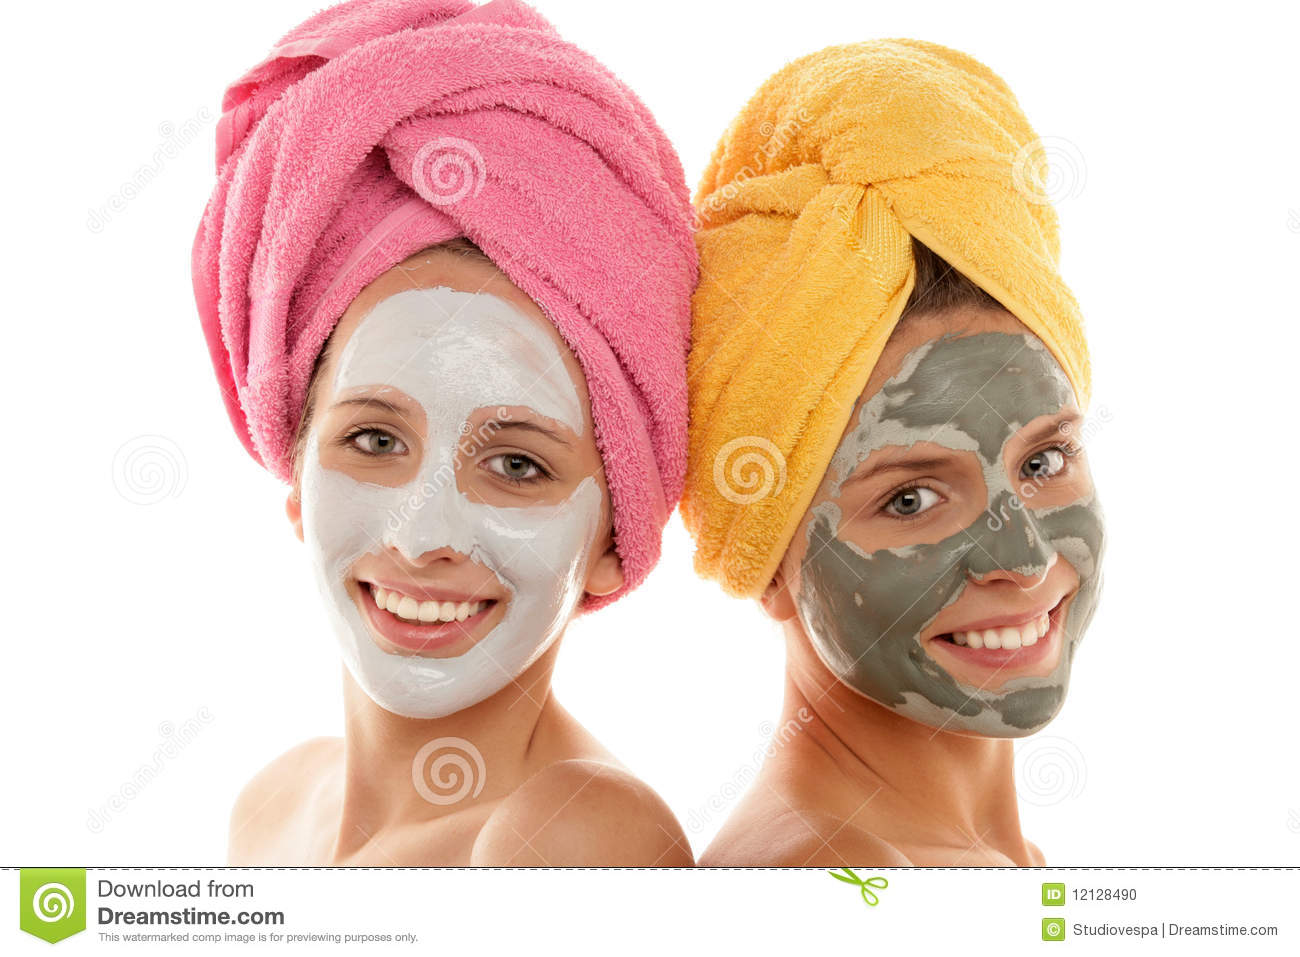 MAGGIE: Facial masks for girls